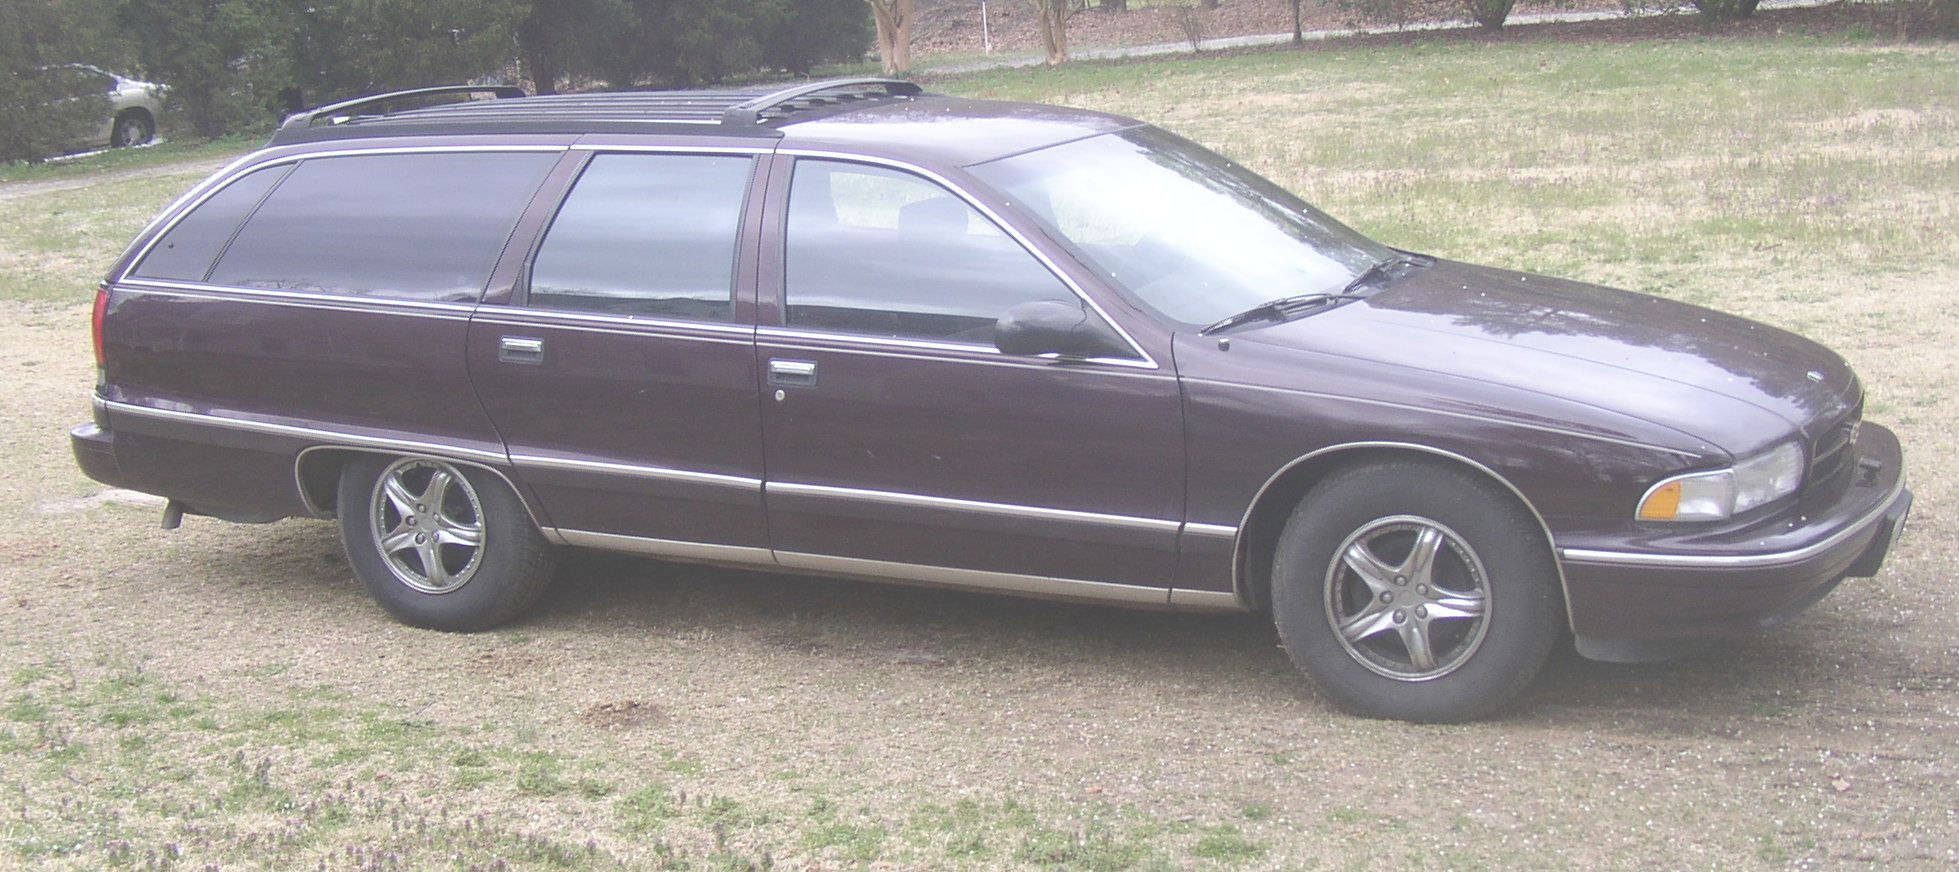 1995 Caprice wagon lt1 - Chevy Impala Forums